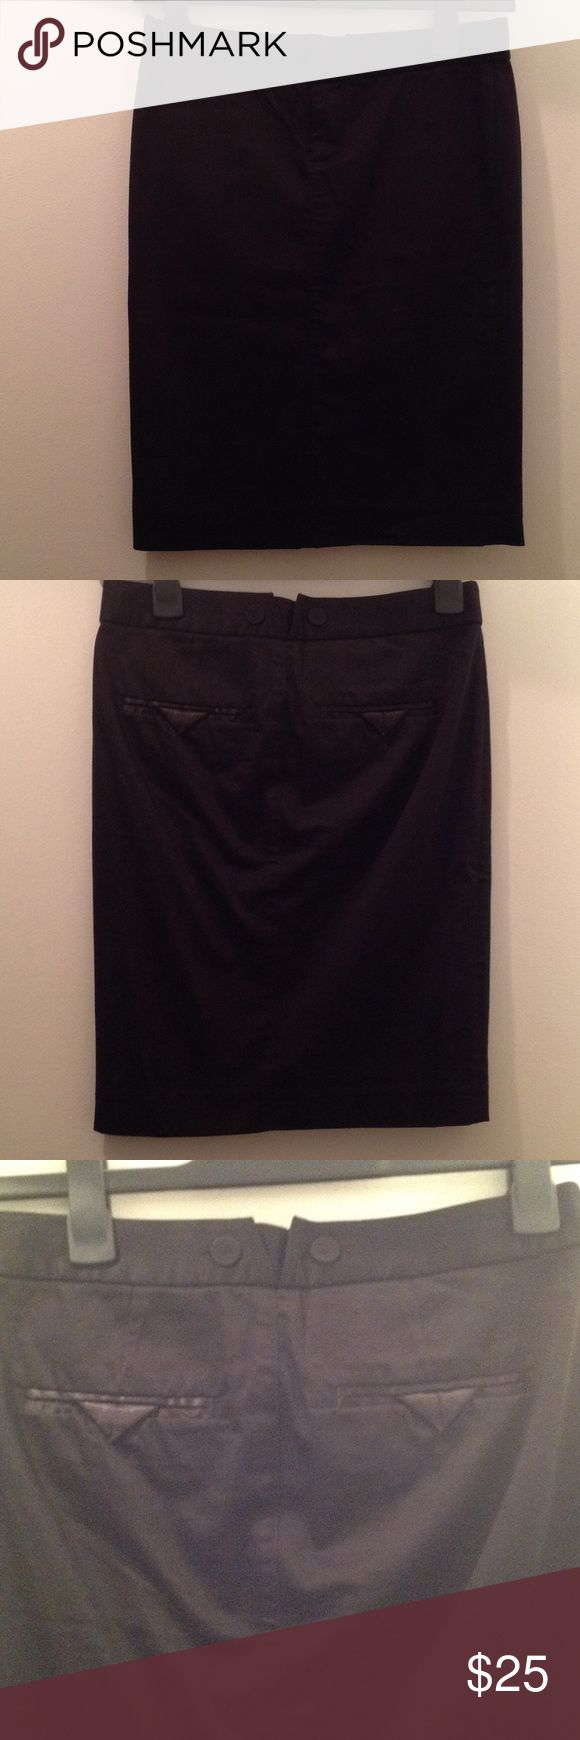 Armani Exchange black skirt Straight black skirt with two back pockets. Zips in front. Perfect work skirt. A/X Armani Exchange Skirts Pencil